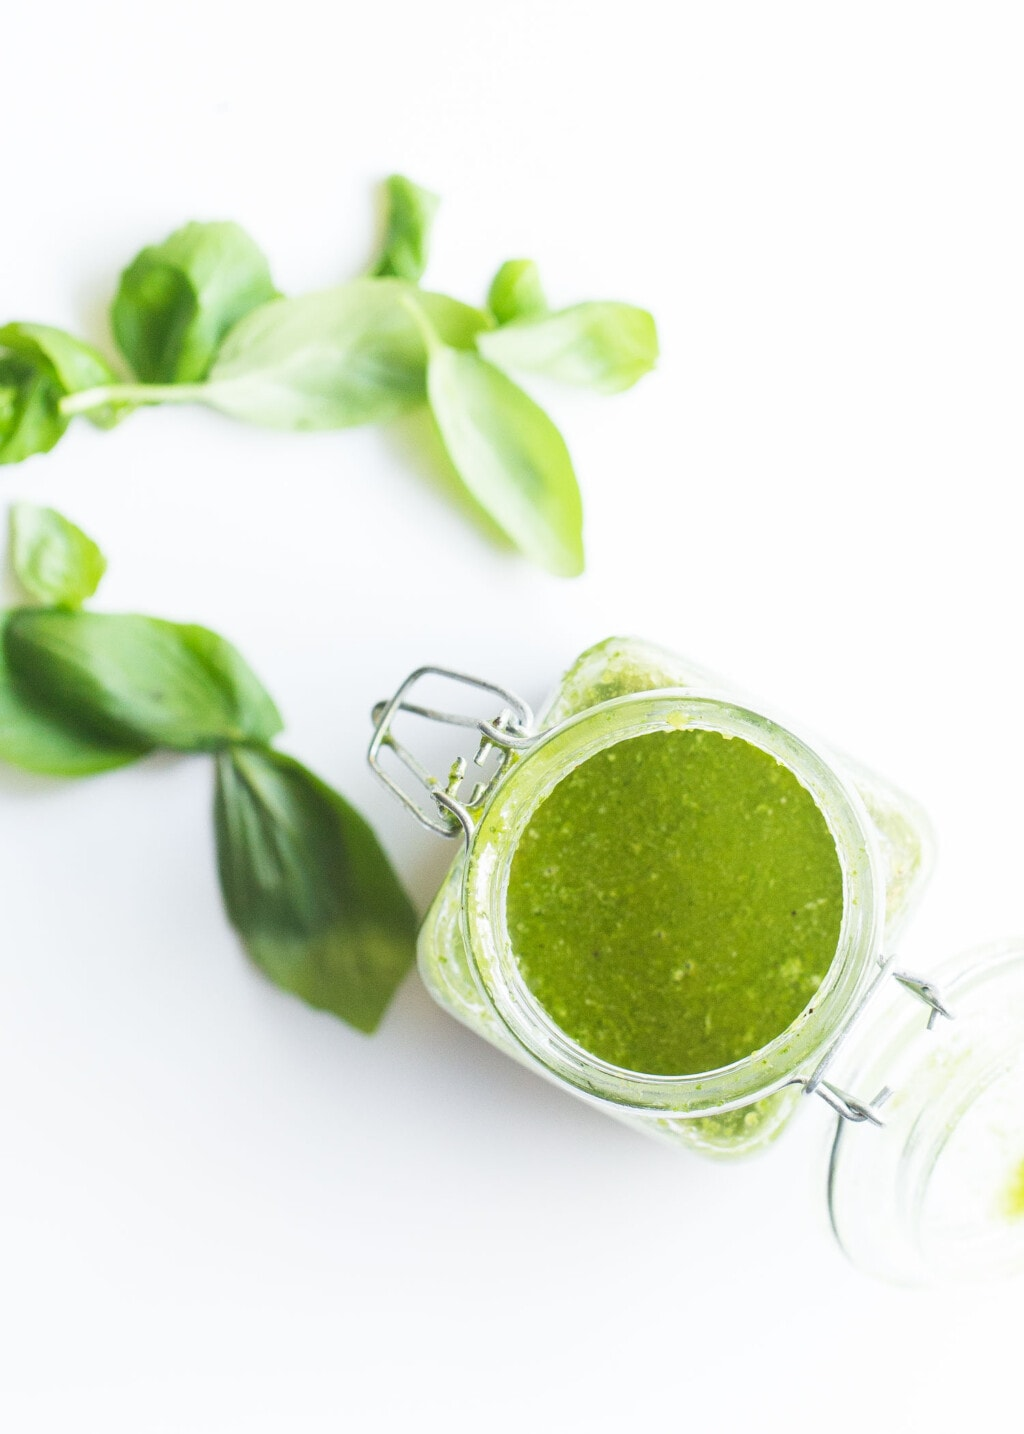 Jar of basil vinaigrette on a white background with basil leaves in the background